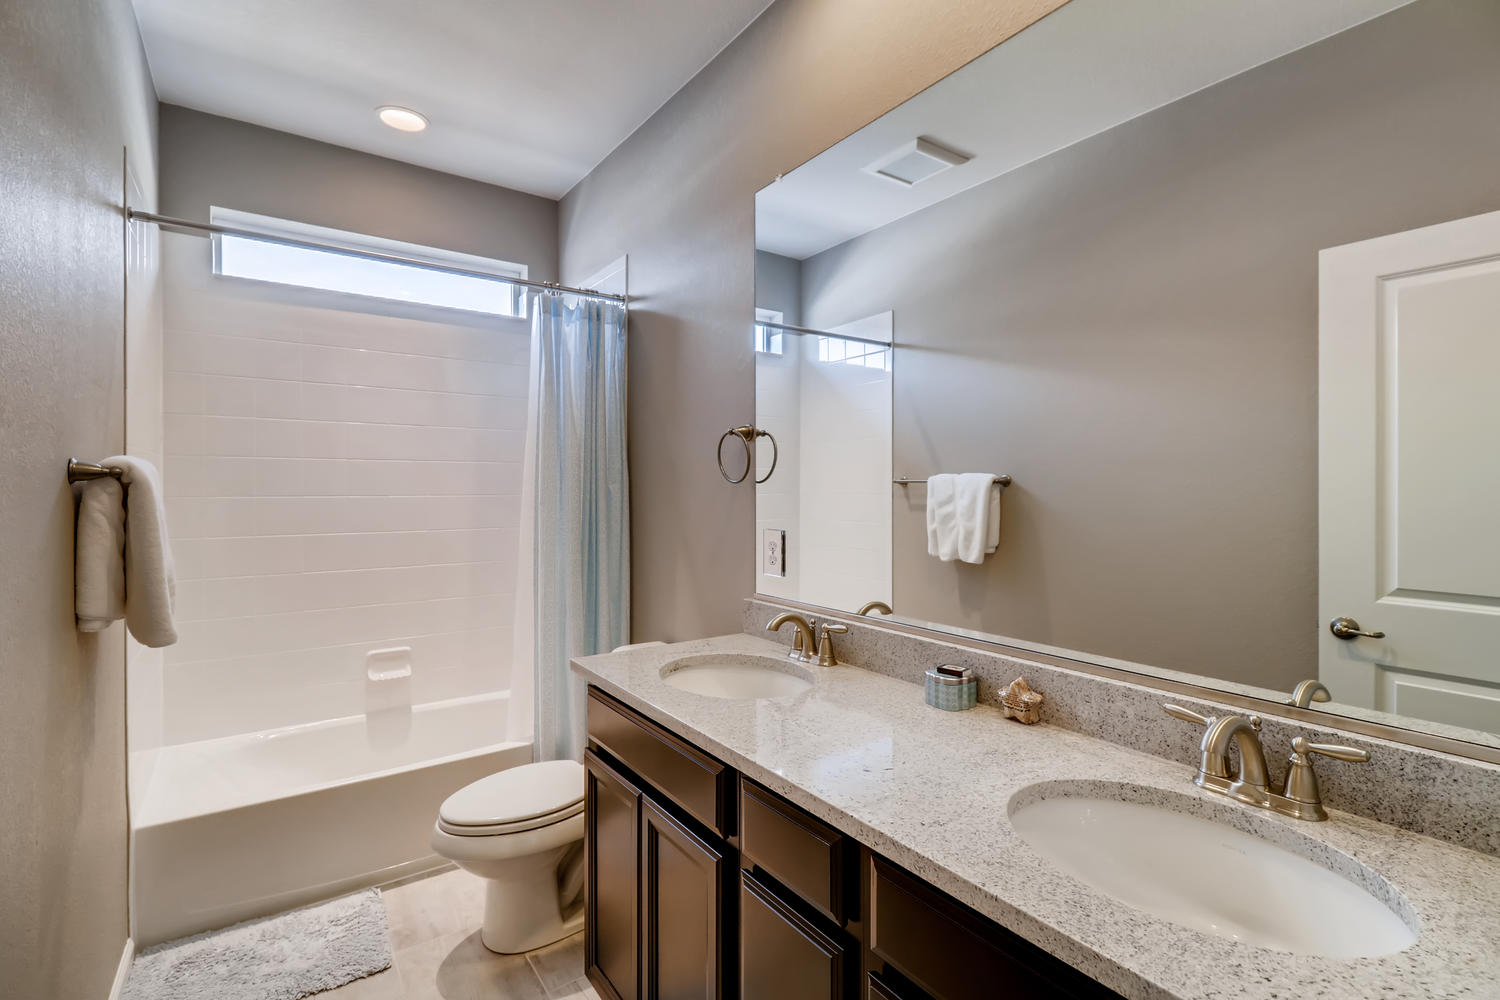 REAL ESTATE LISTING: 1029 Redbud Circle Bathroom #3